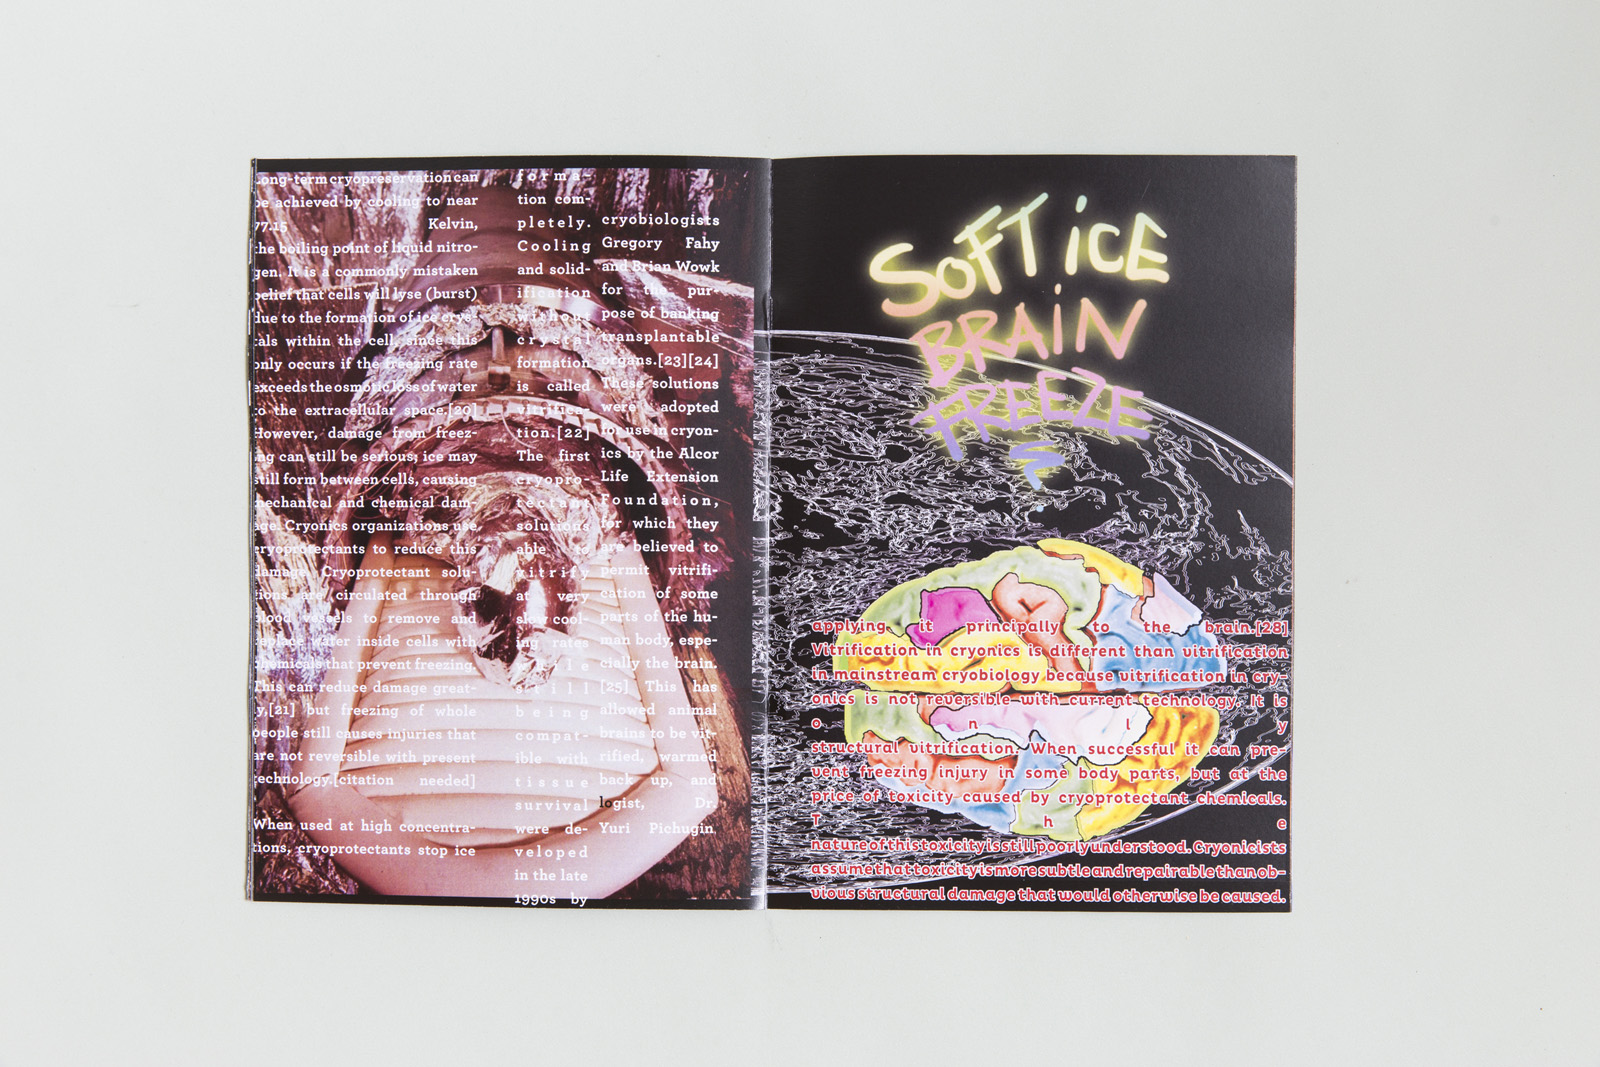 Sofr Ice Cream Zine